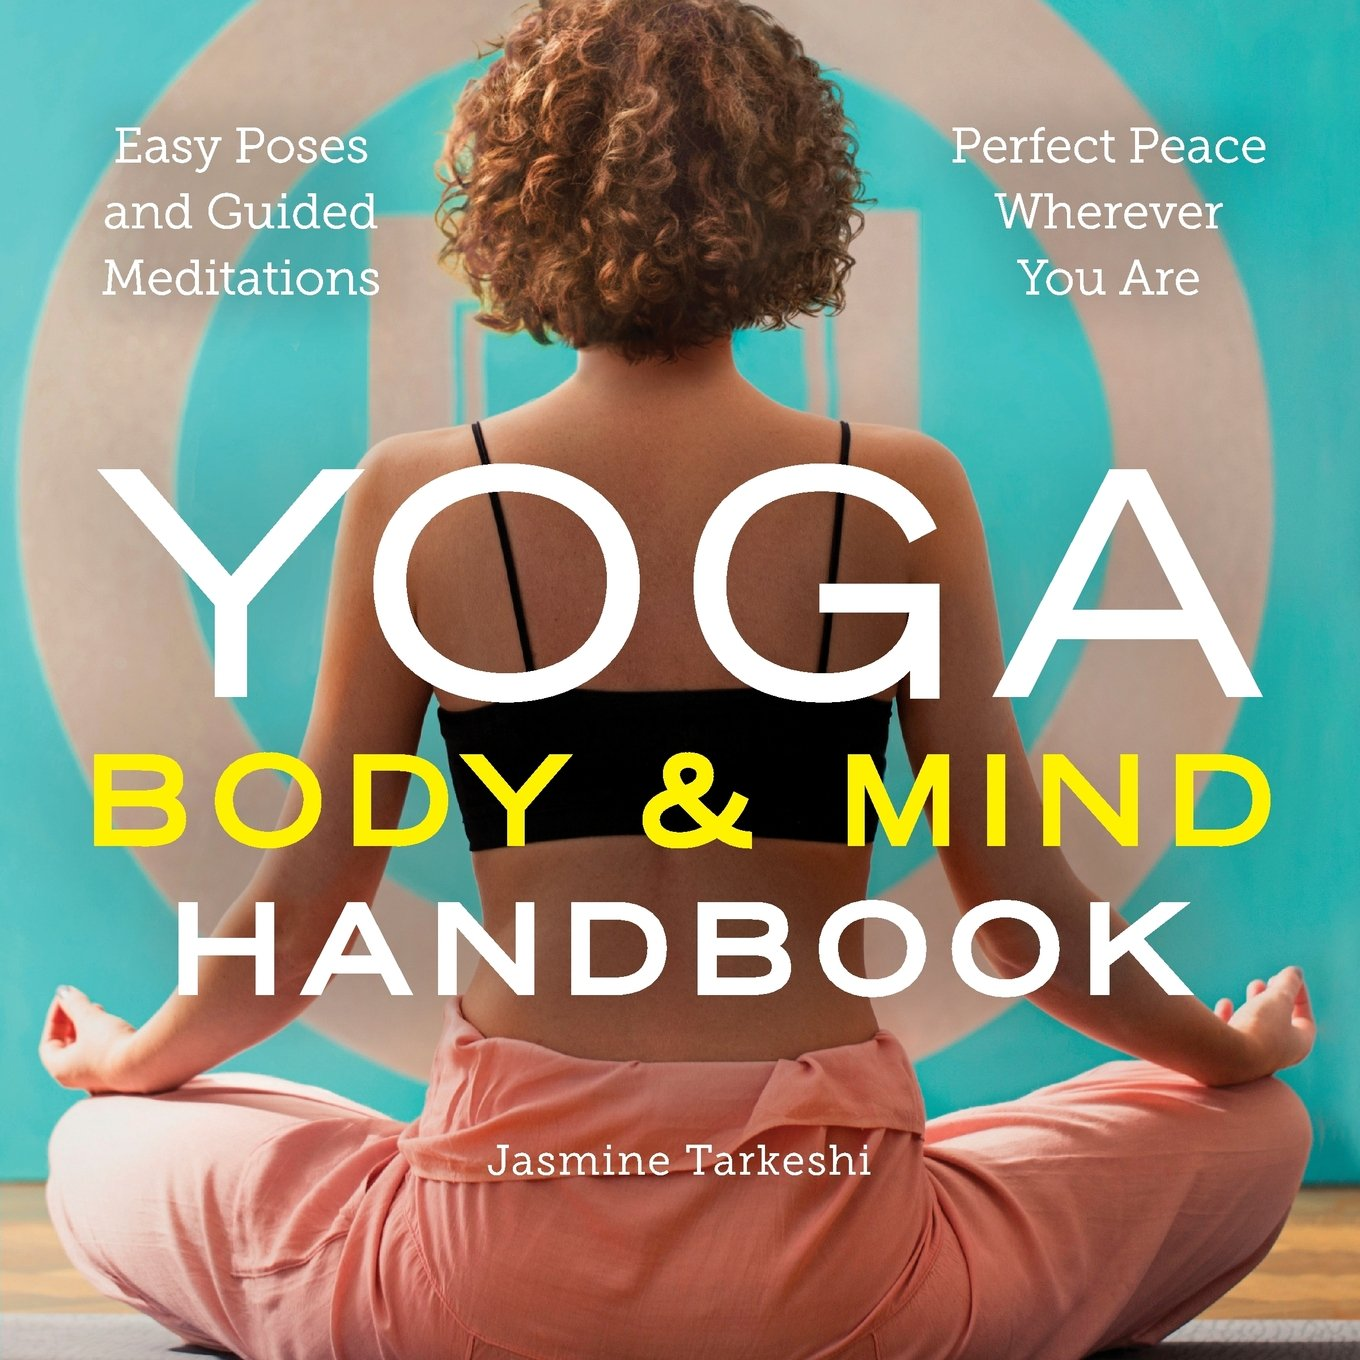 Yoga Body & Mind Handbook